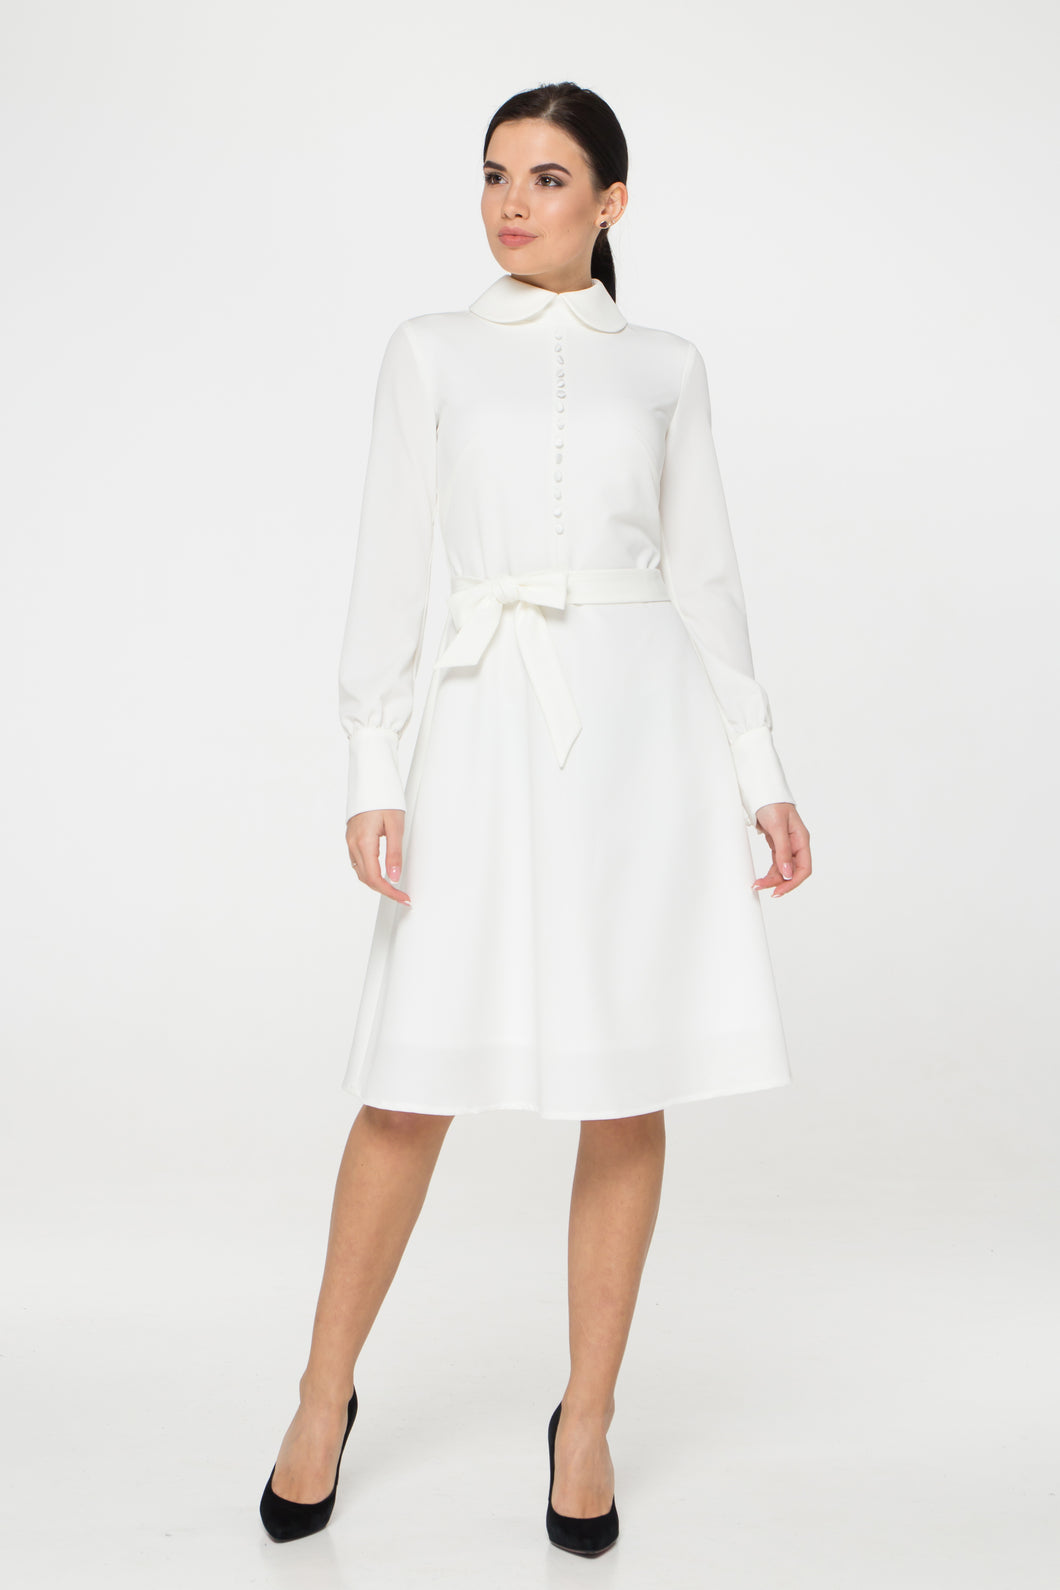 Collared Button front white dress